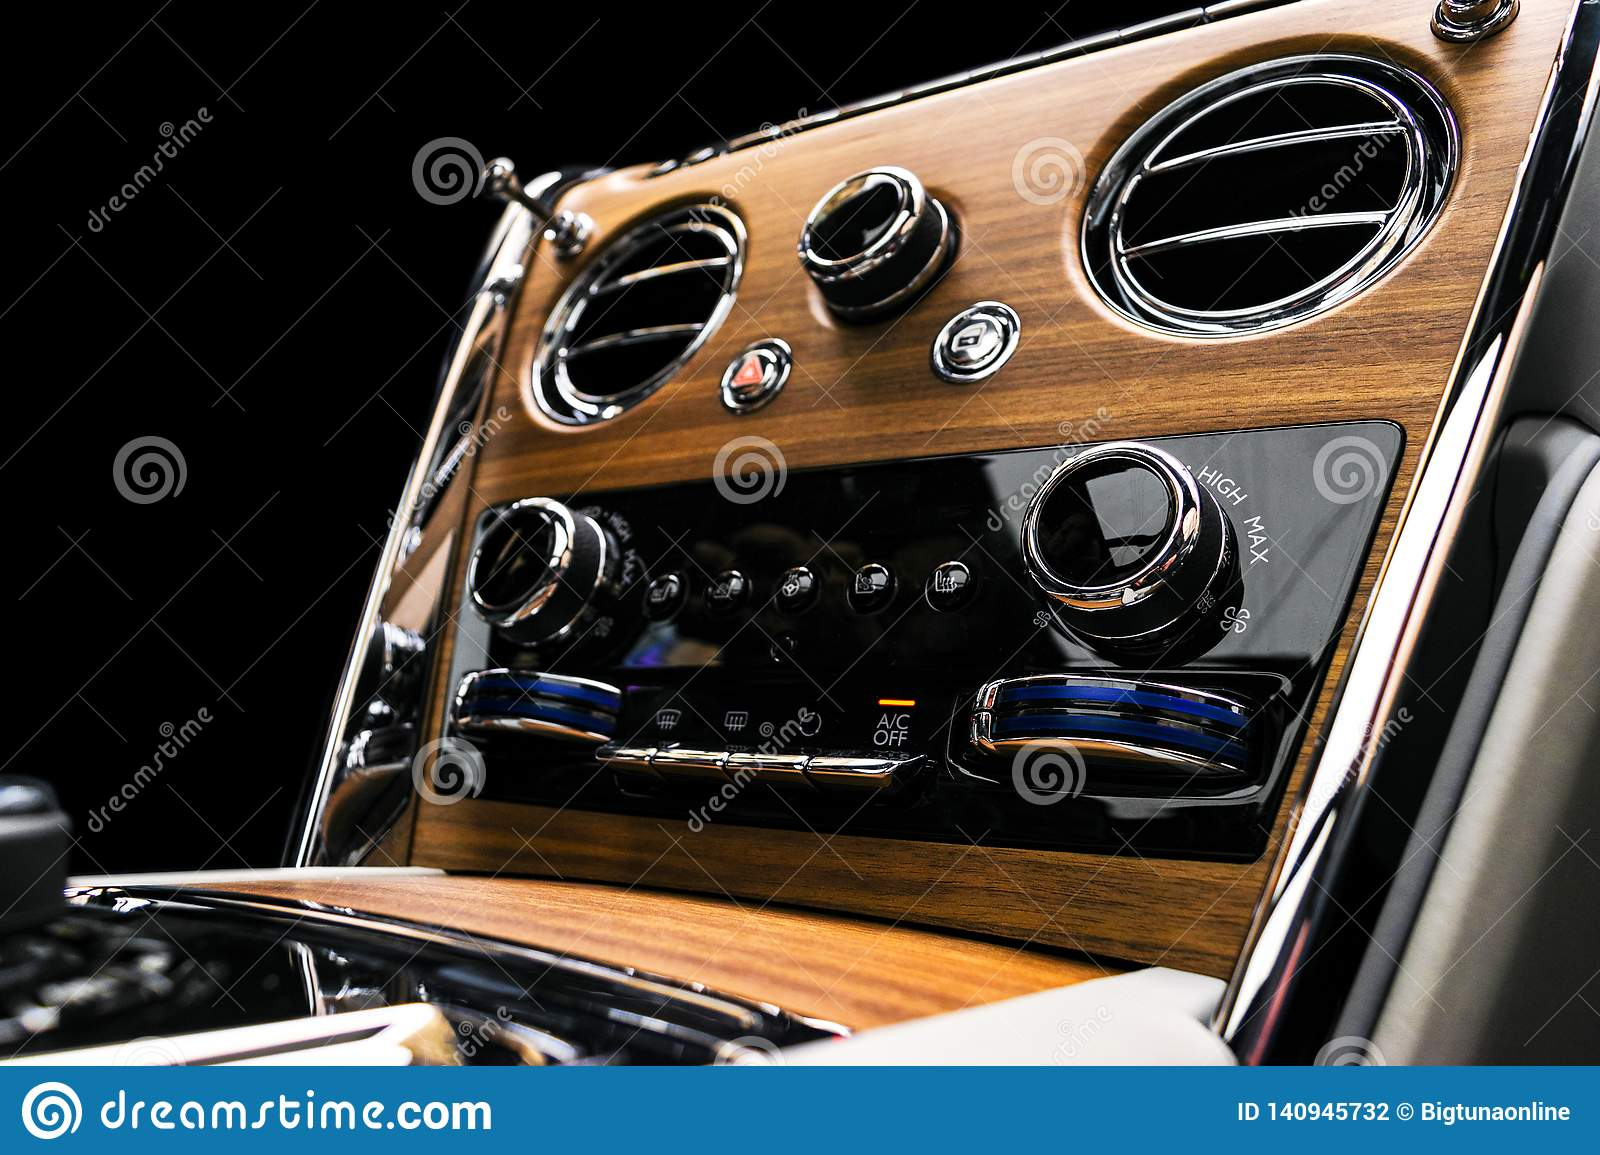 Modern Luxury Car Inside Interior Of A Vehicle With Natural Wood Panel White Leather With Stitching Car Detailing Dashboard M Stock Photo Image Of Interior Limousine 140945732